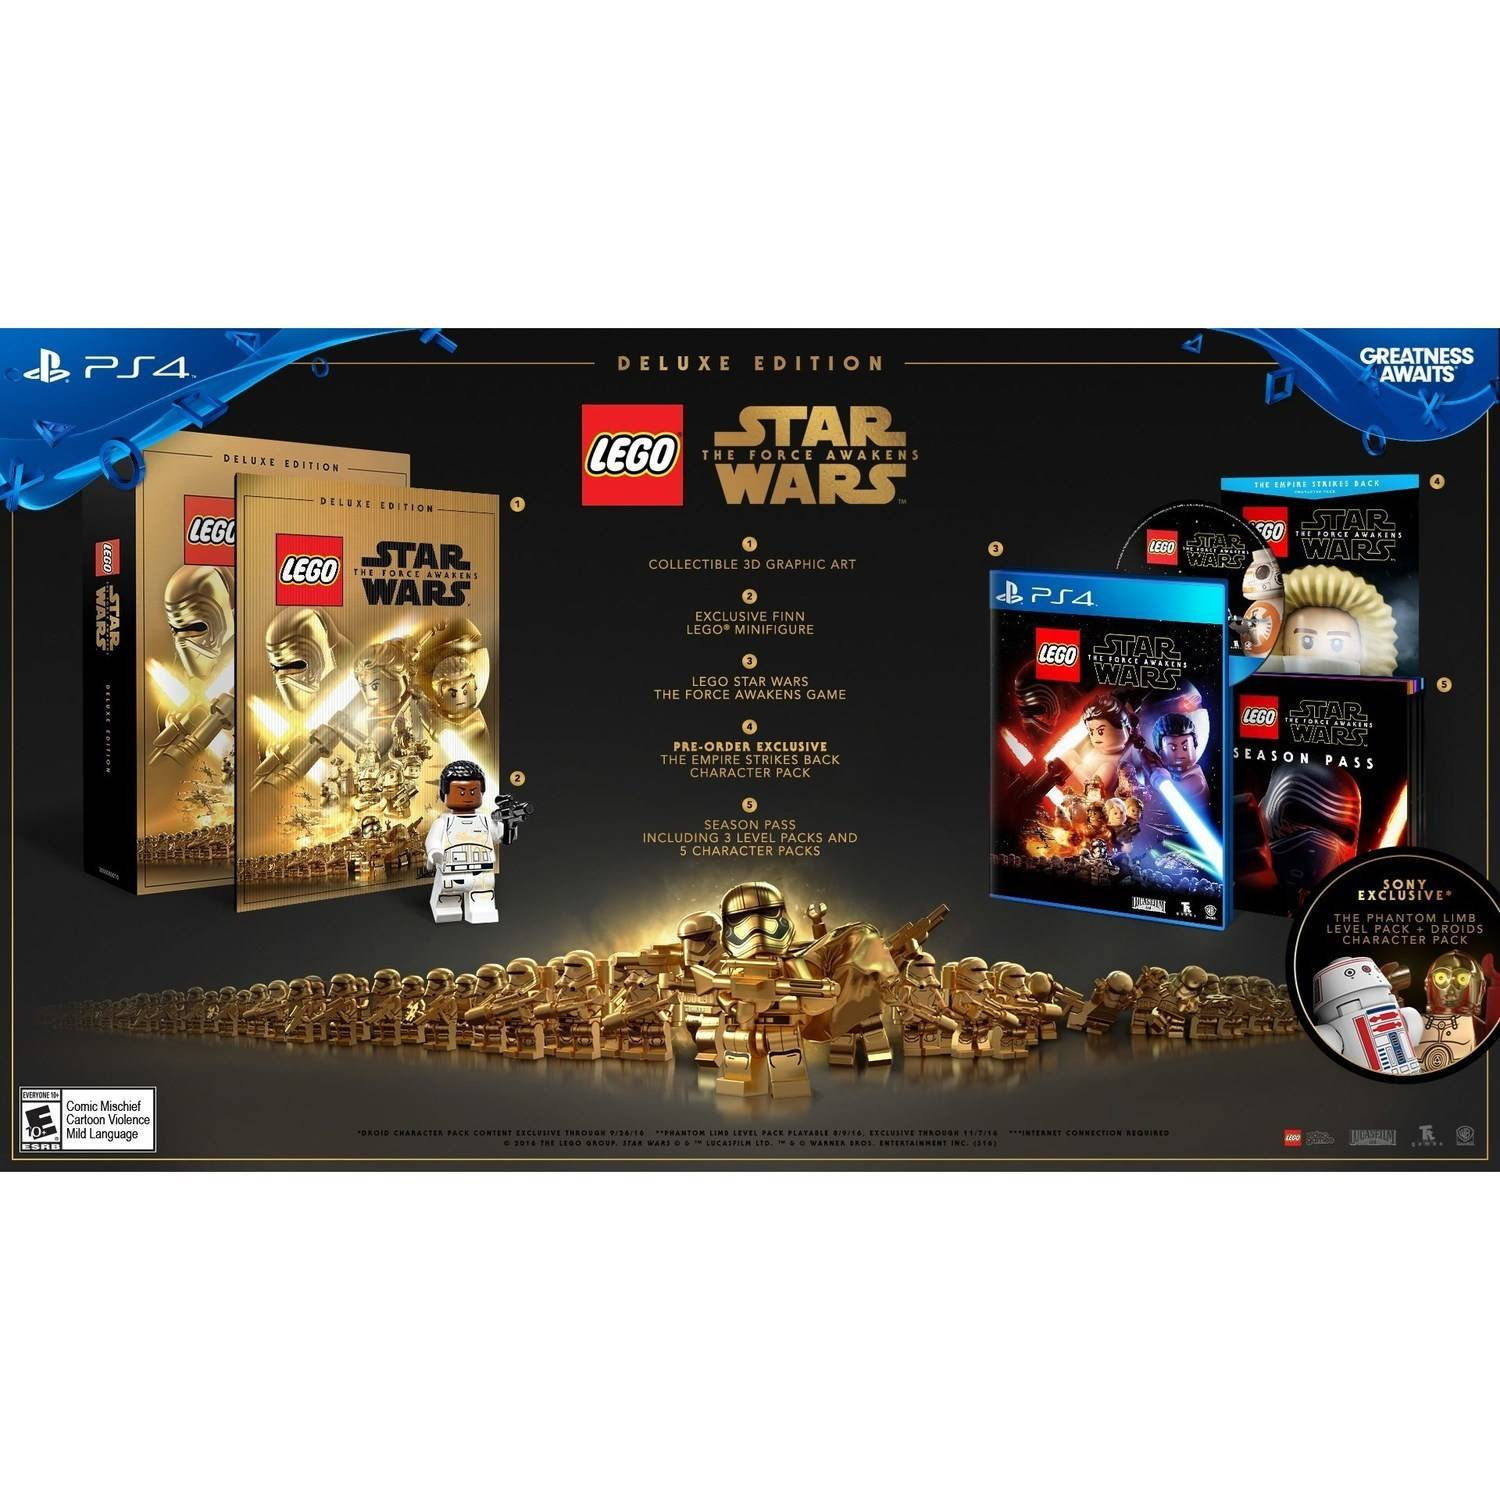 LEGO Star Wars The Force Awakens Deluxe Edition (PS4)